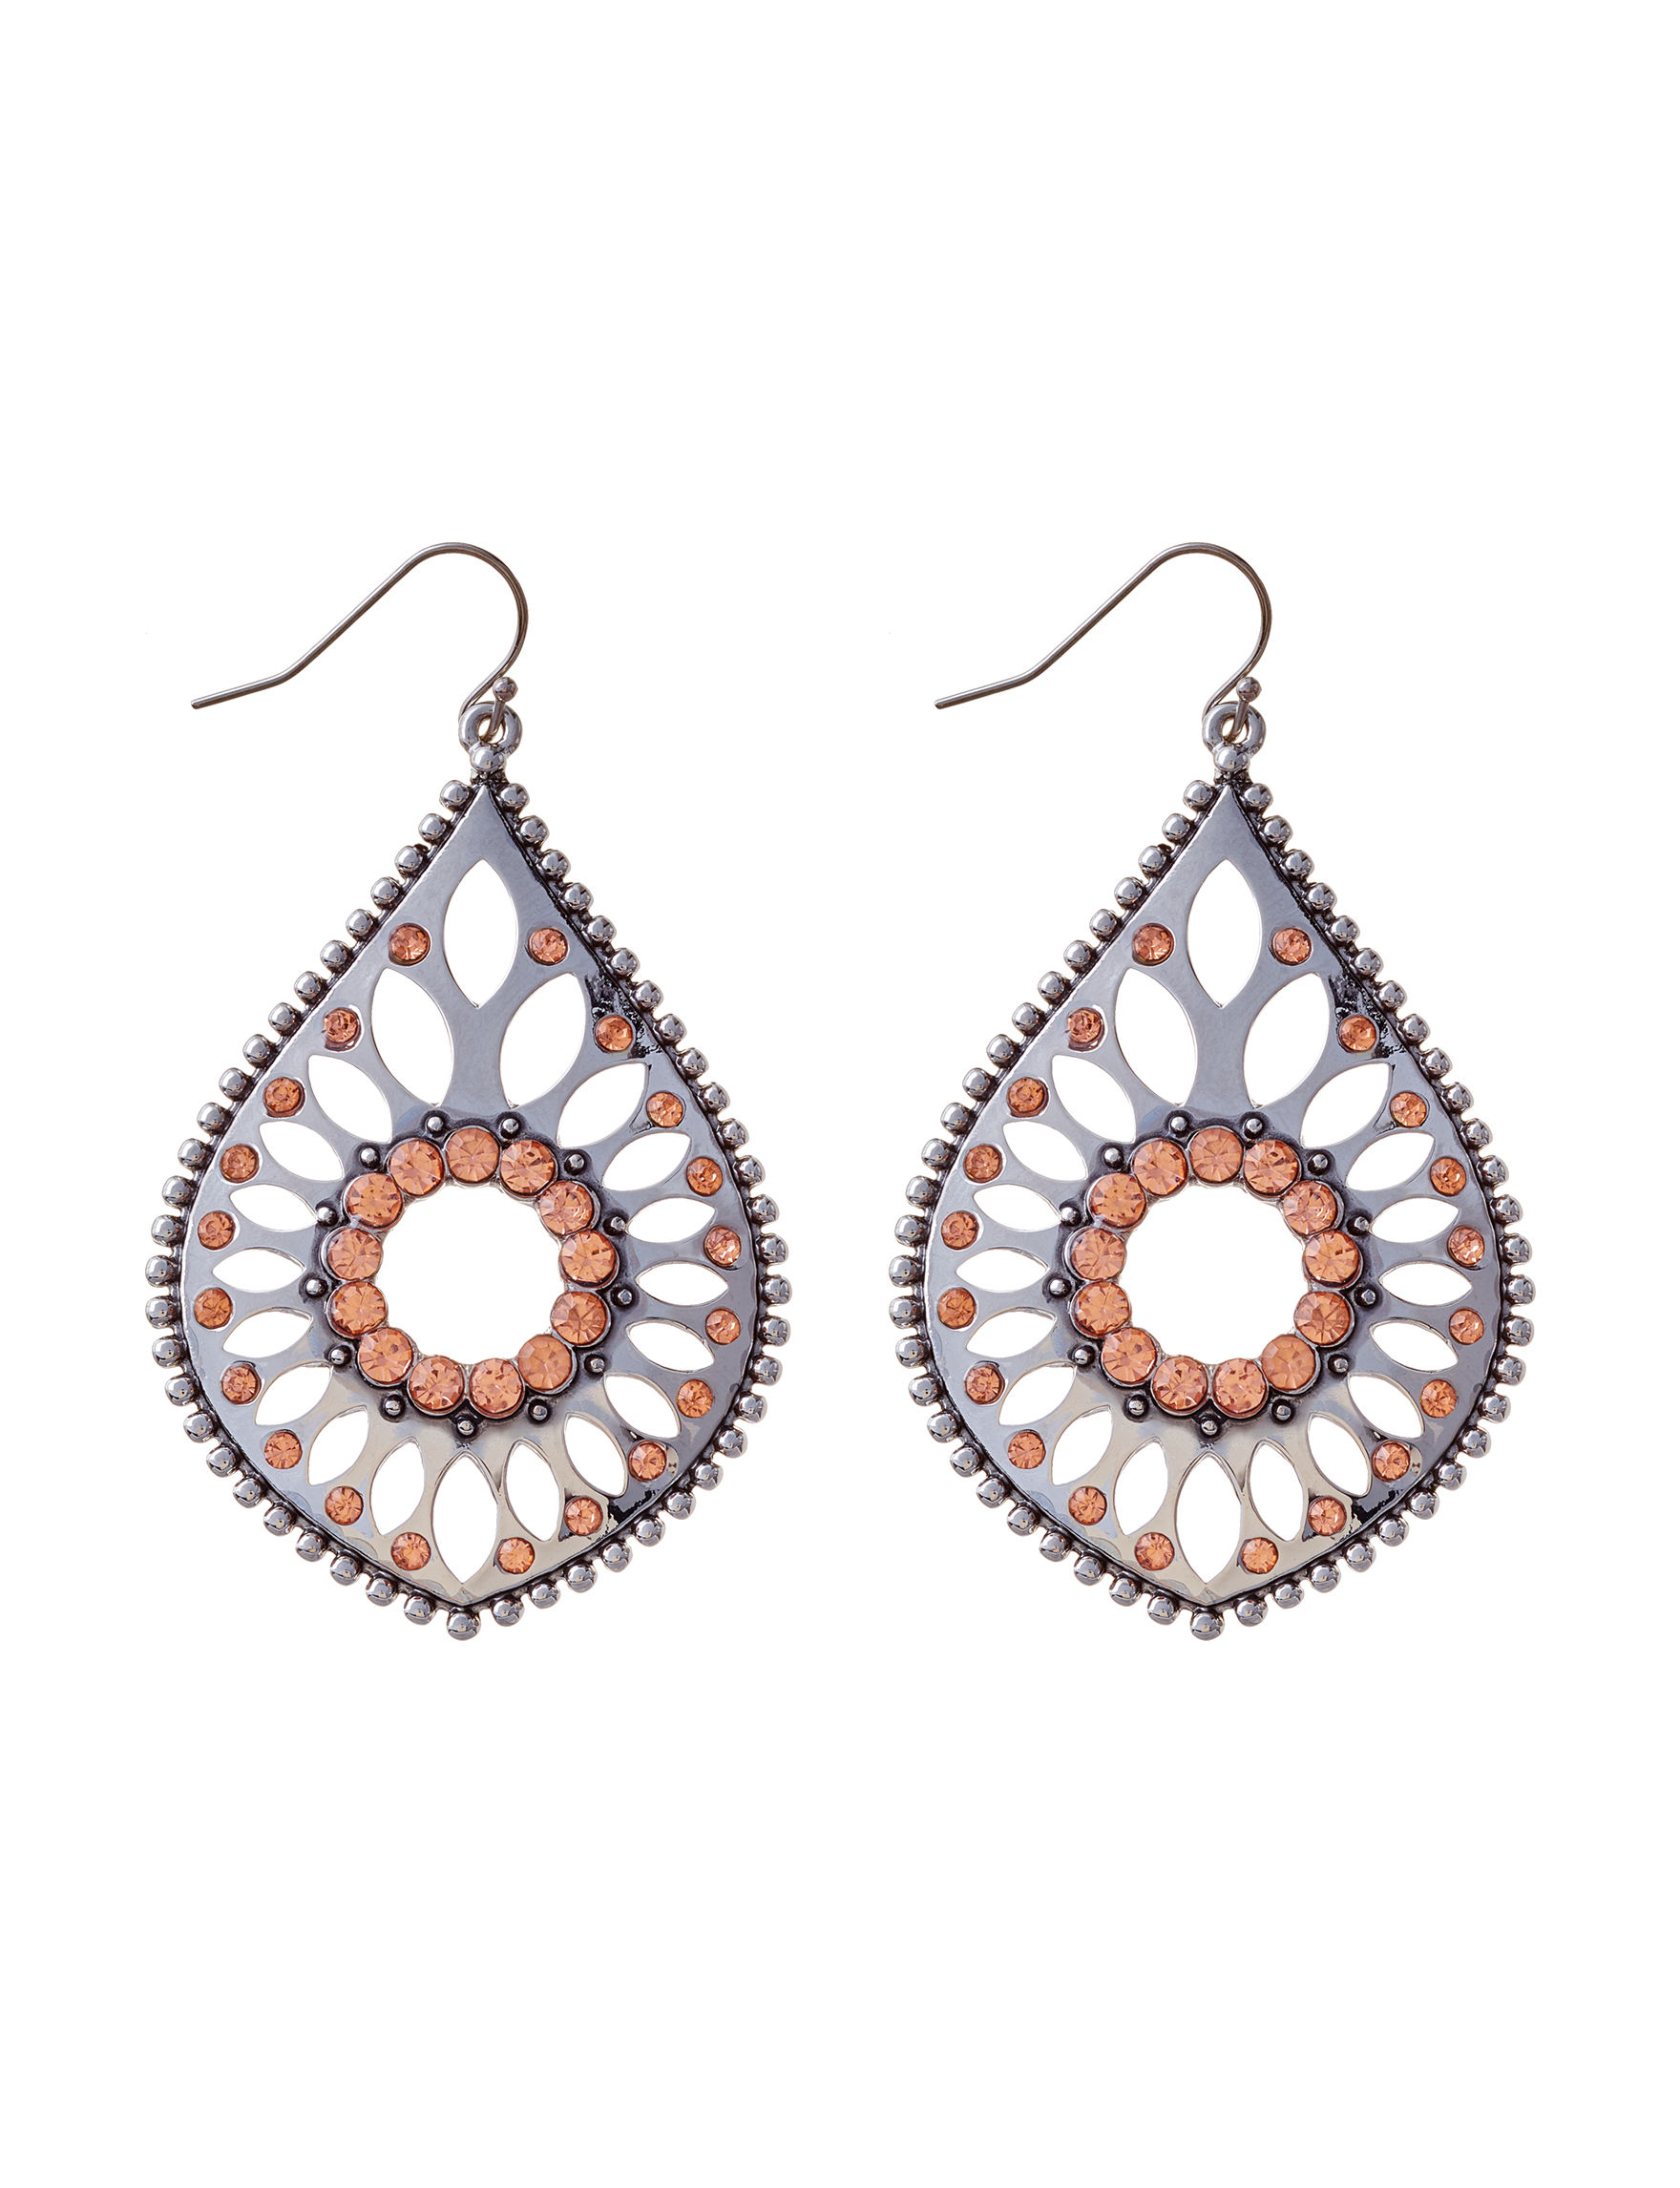 Jessica Simpson Silver Drops Earrings Fashion Jewelry